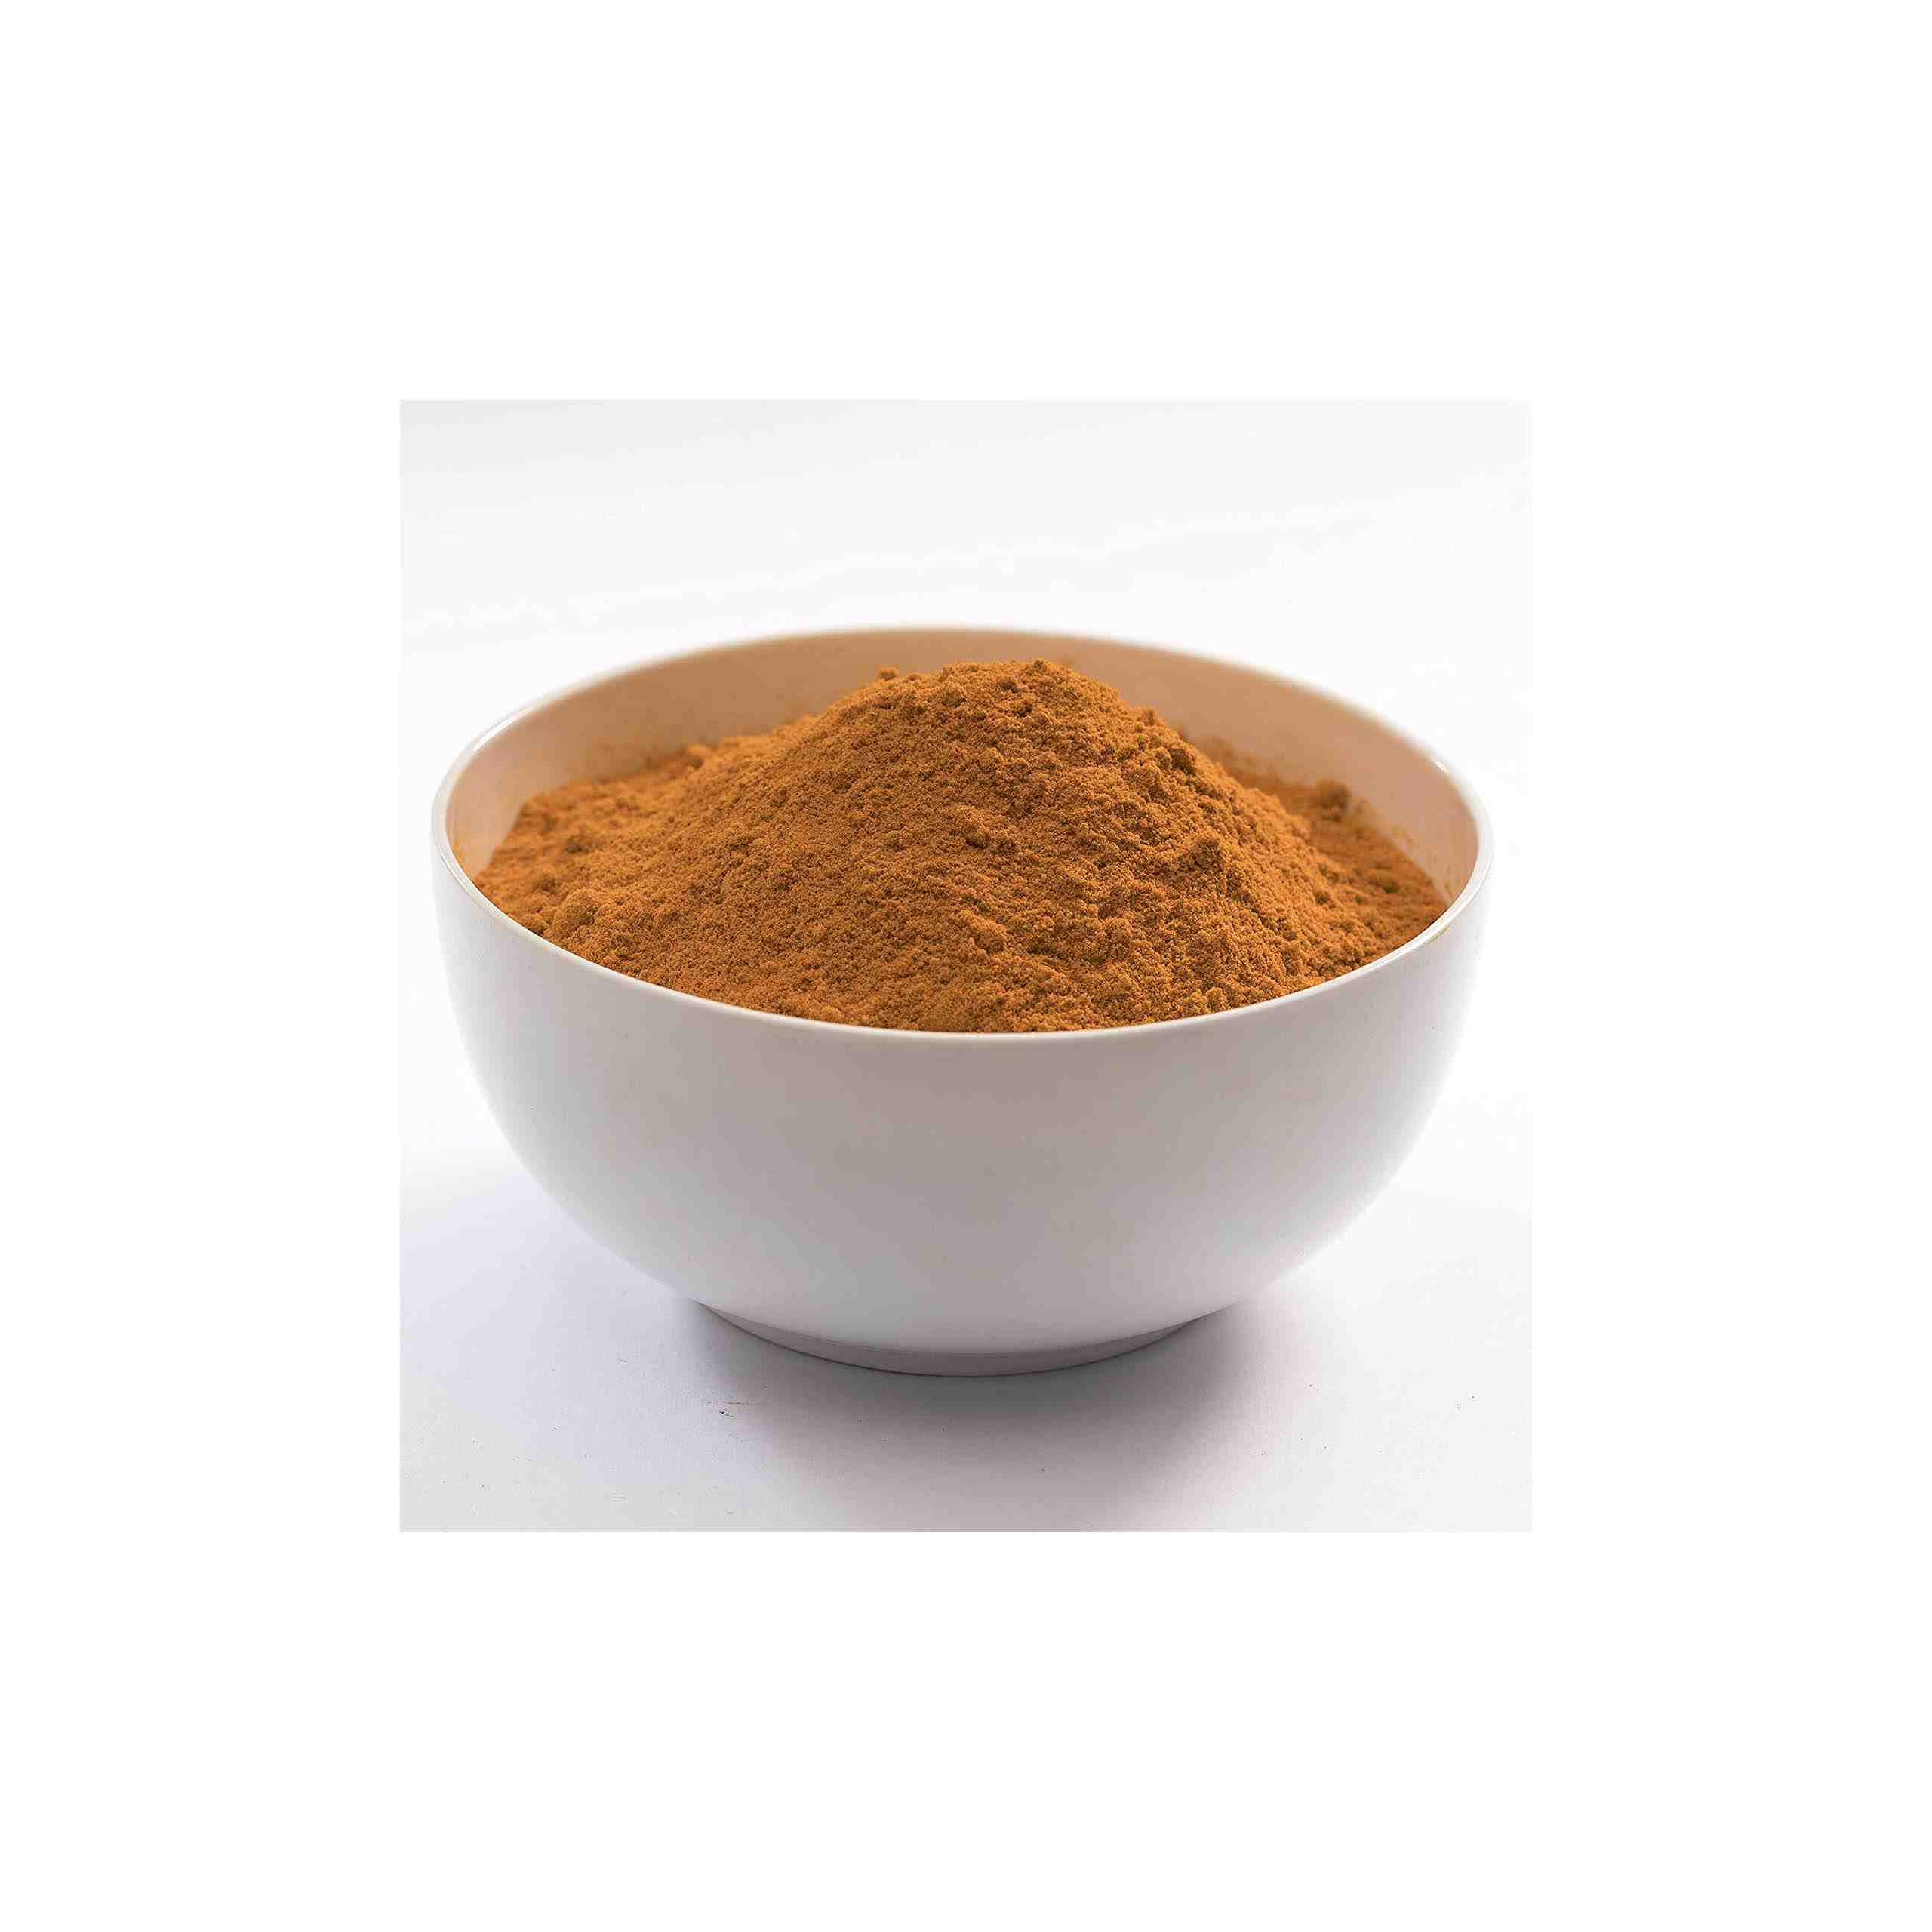 Seeds and Hands Wayanad Turmeric/Haldi Powder [100% Pure and Natural] Pack of 2 x 90g (180g)